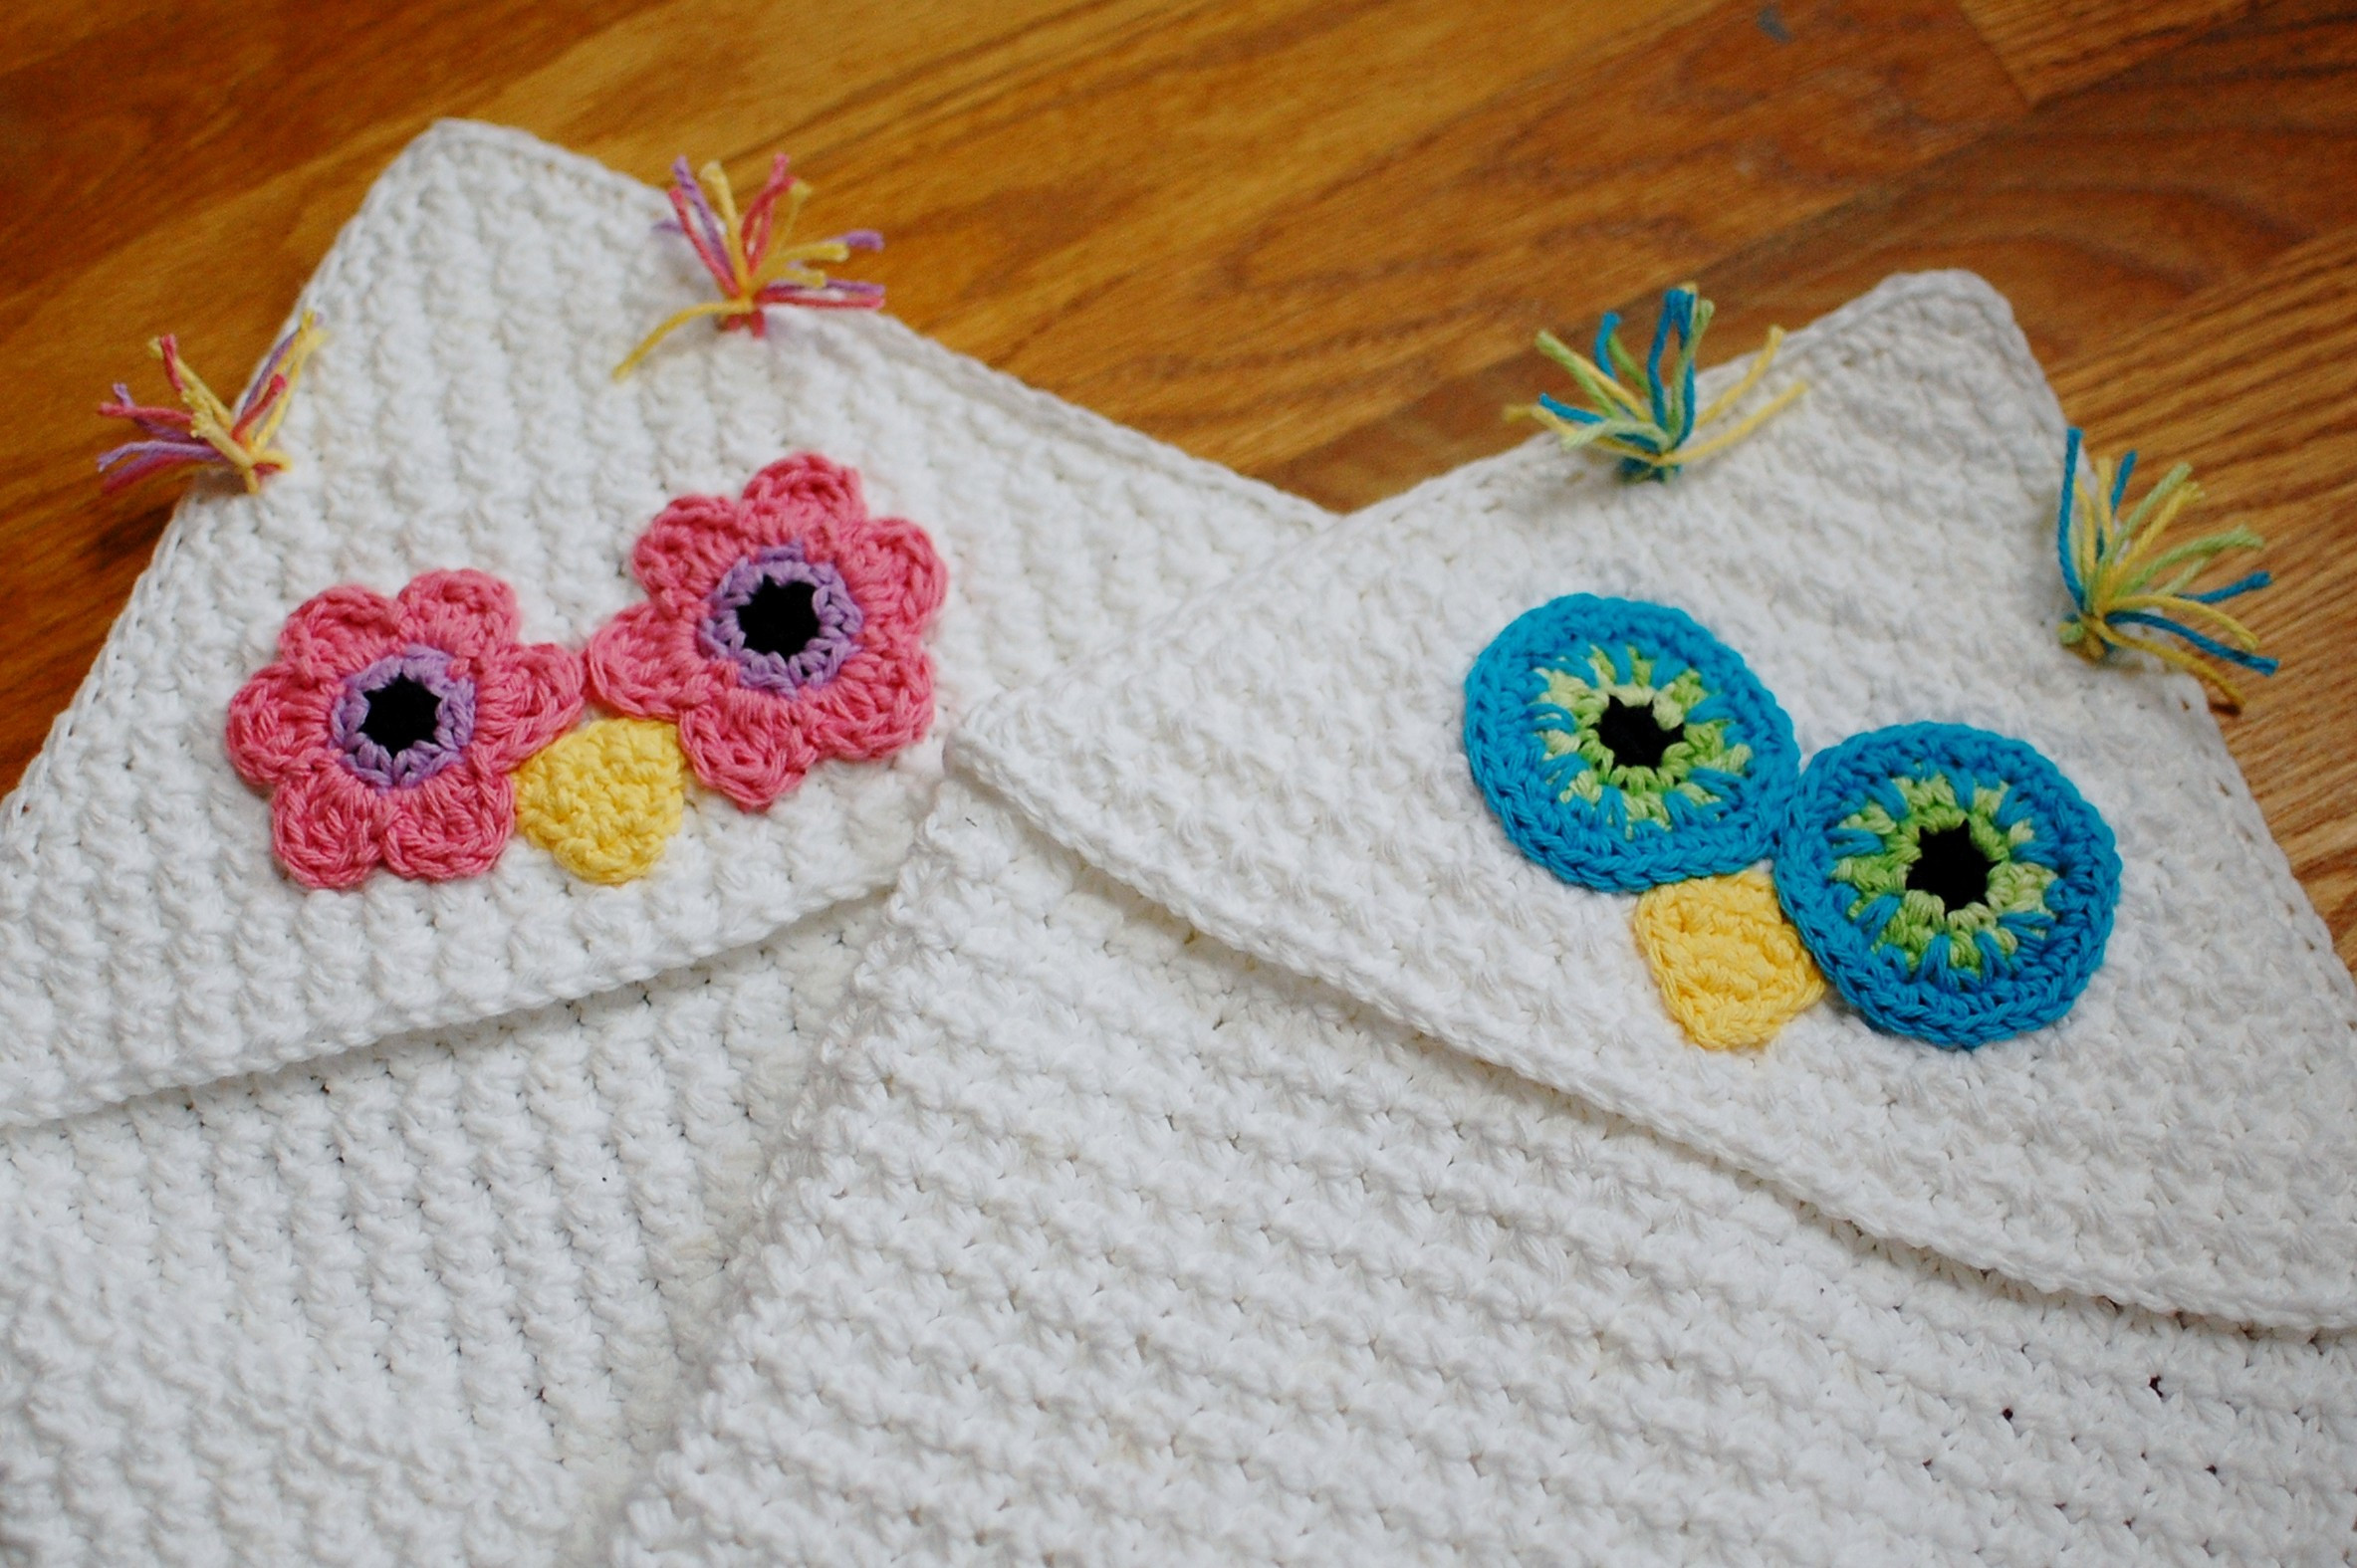 Crochet Owl Blanket Luxury Crochet Owl Pattern for Adorable and Cute Design Of Contemporary 43 Images Crochet Owl Blanket